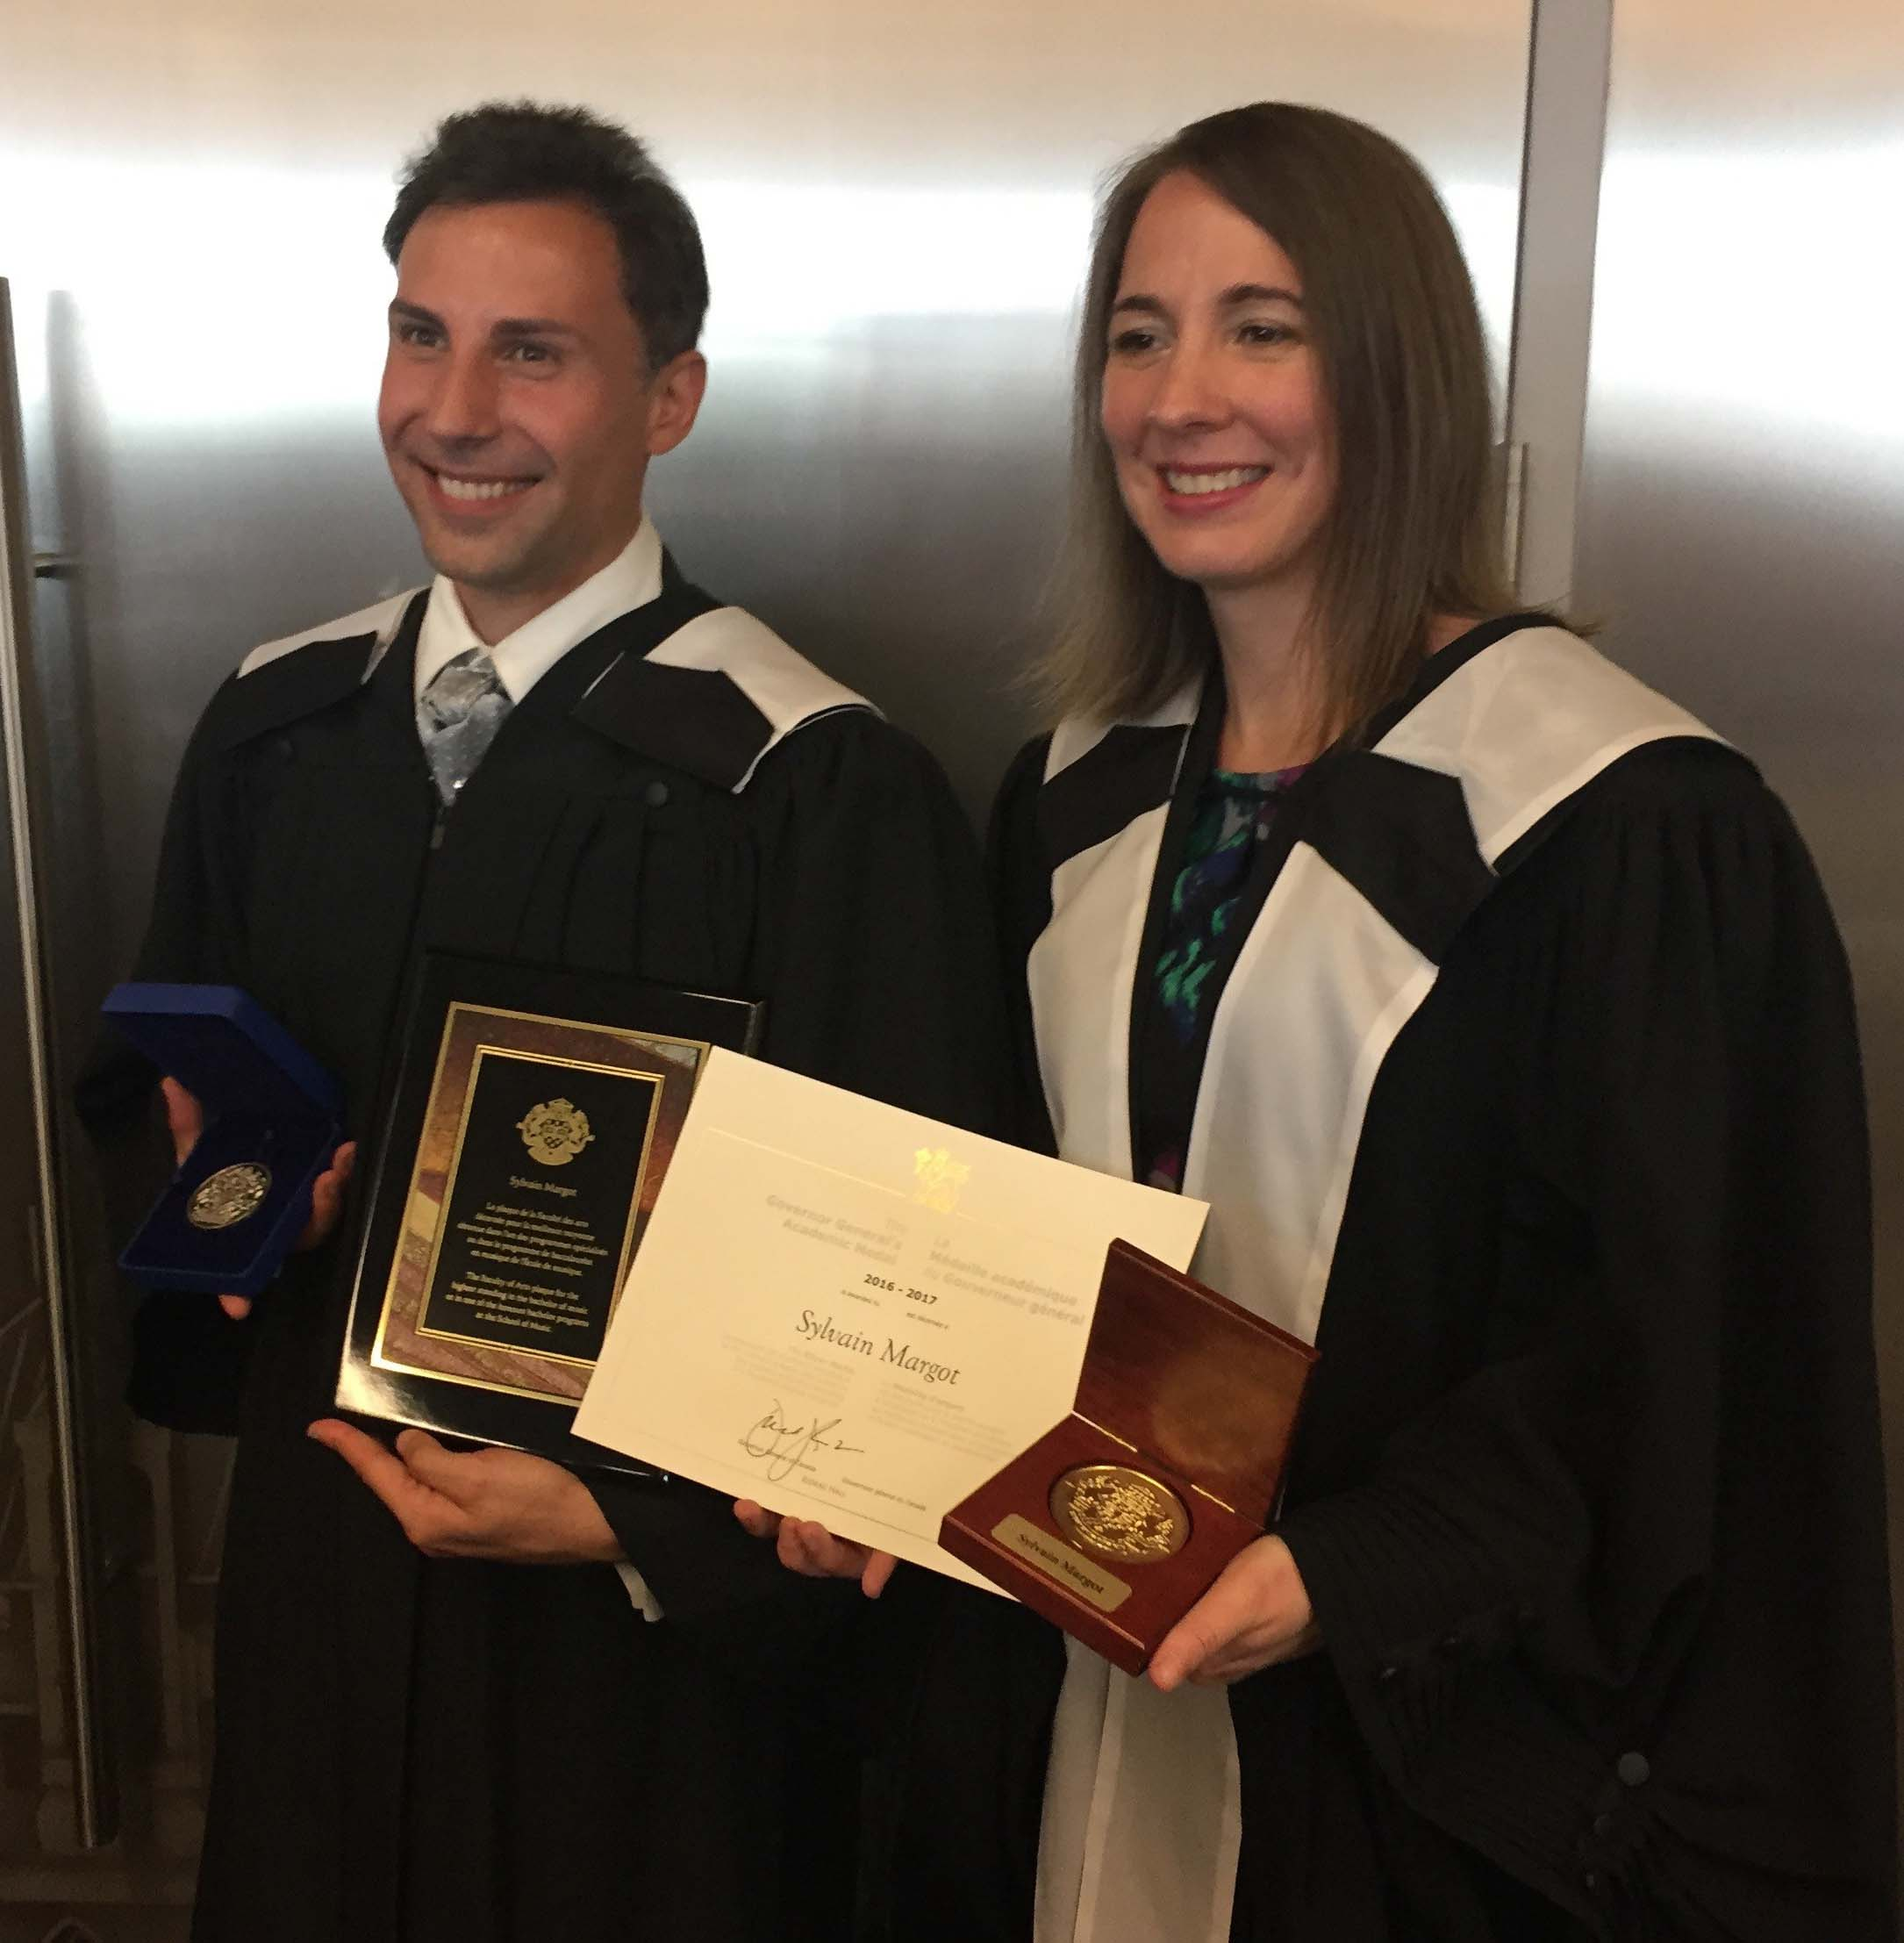 Sylvain Margot and Professor Julie Pednault Deslauriers pictured with his medals